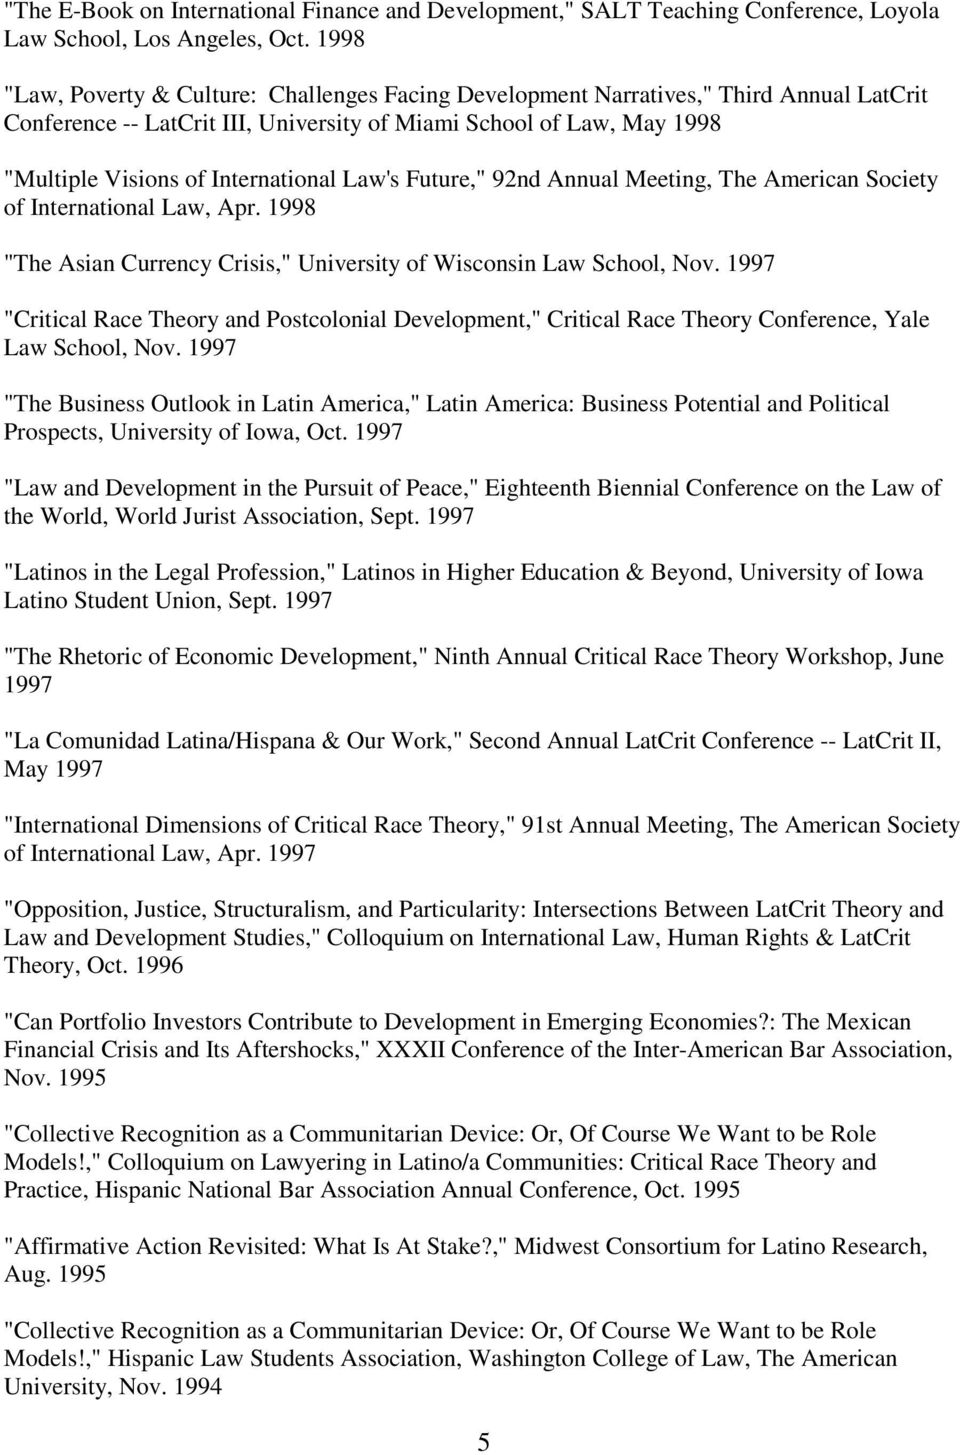 "Law's Future,"" 92nd Annual Meeting, The American Society of International Law, Apr. 1998 ""The Asian Currency Crisis,"" University of Wisconsin Law School, Nov."